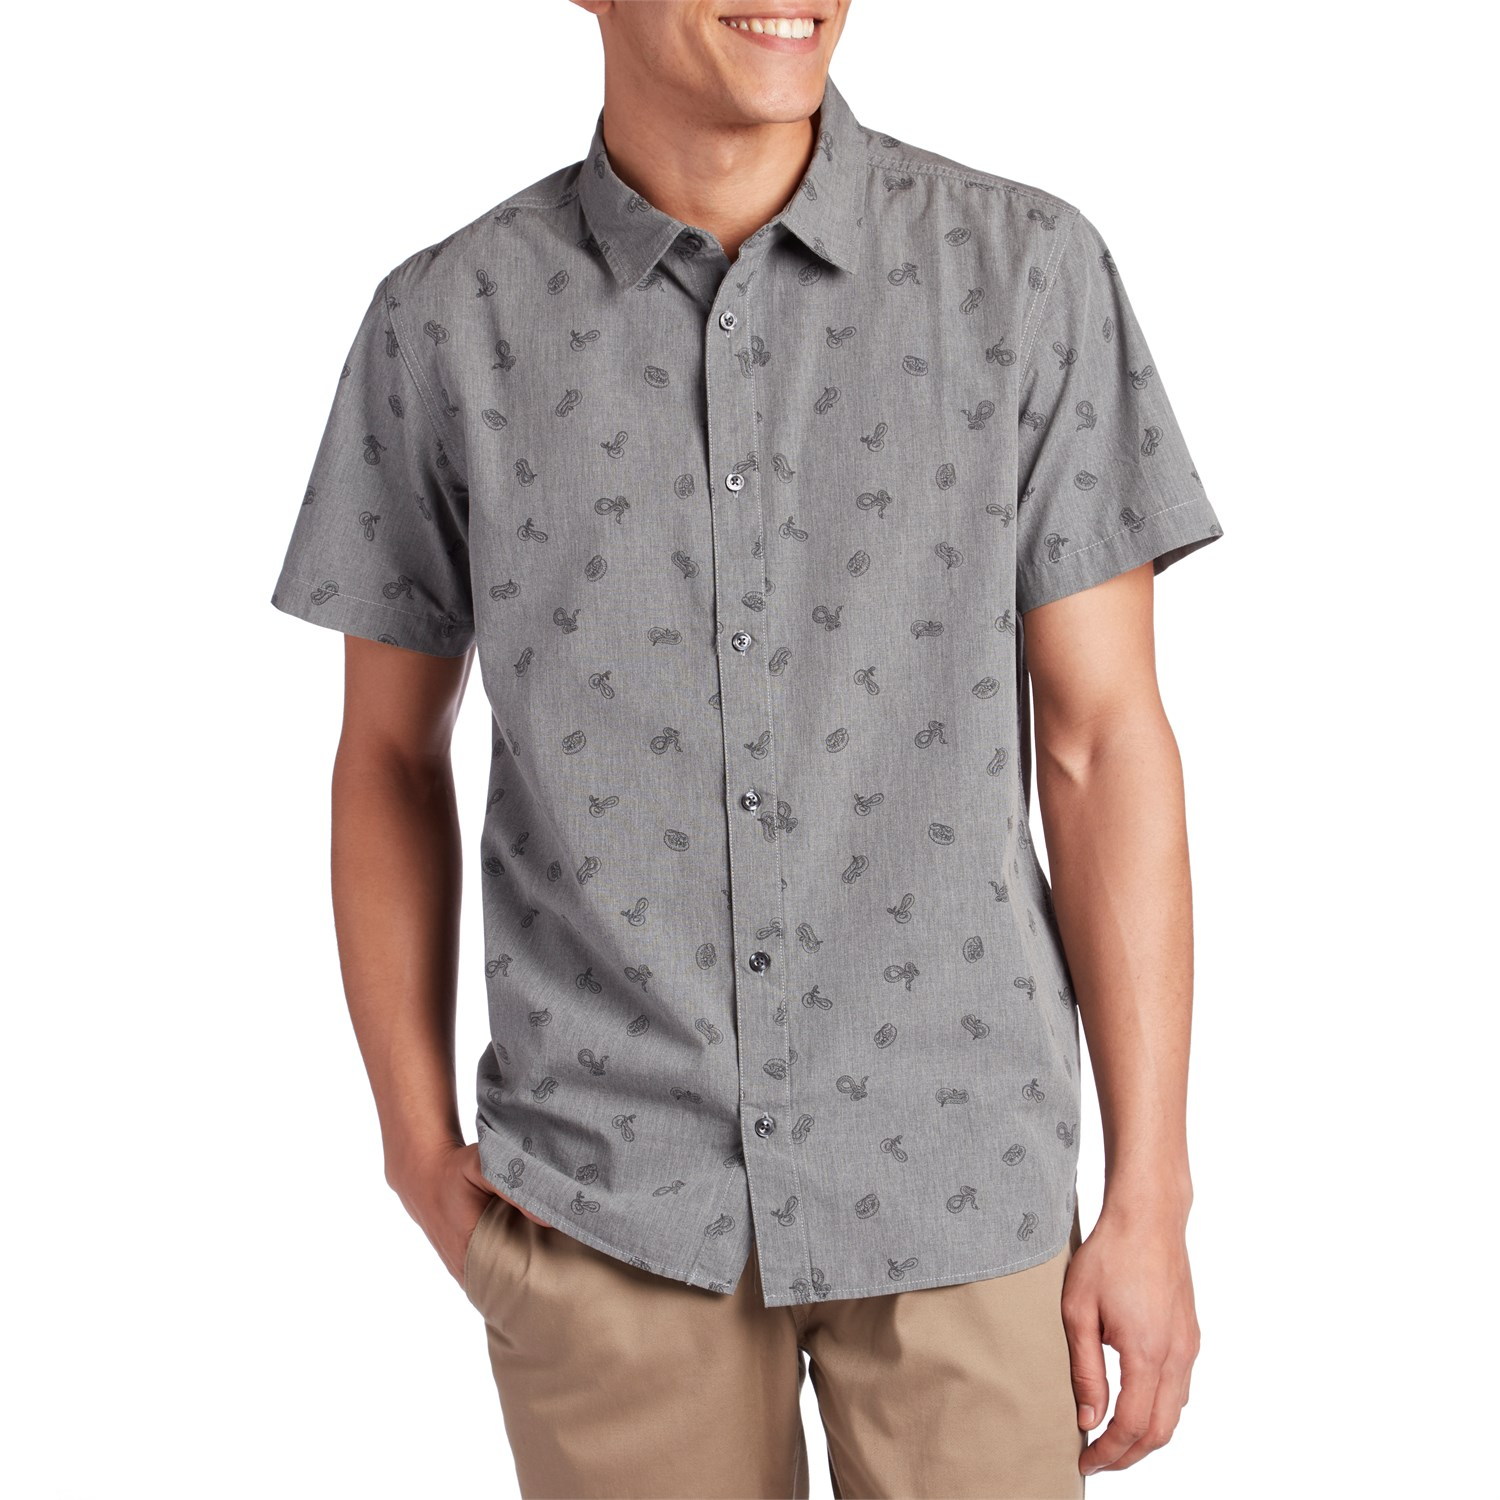 6c304d08d The North Face Bay Trail Short-Sleeve Shirt